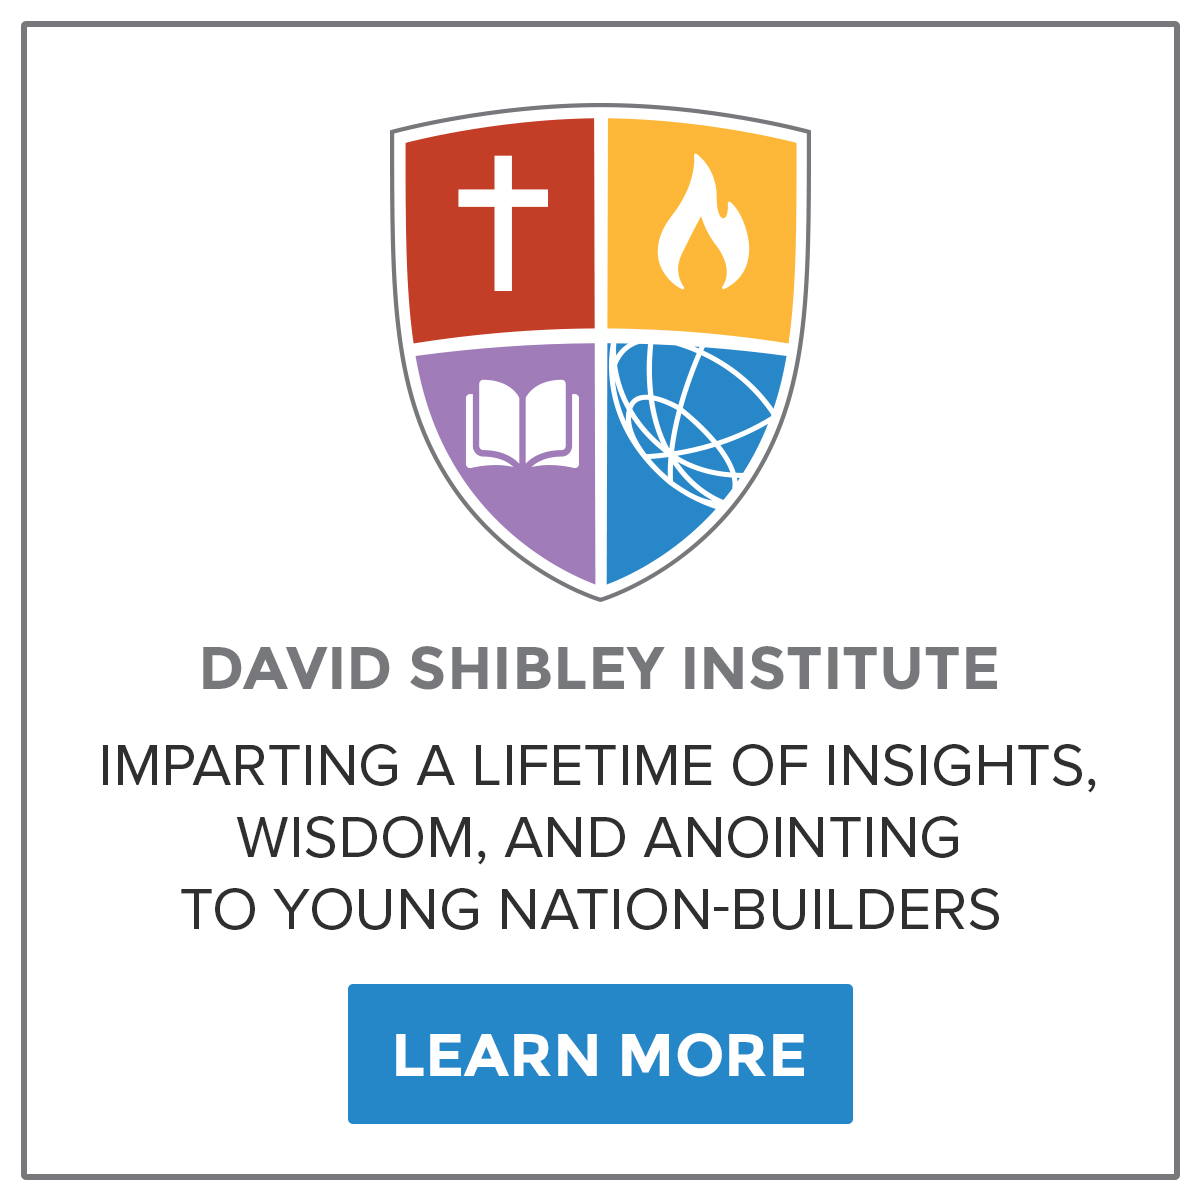 david shibley institute.jpg